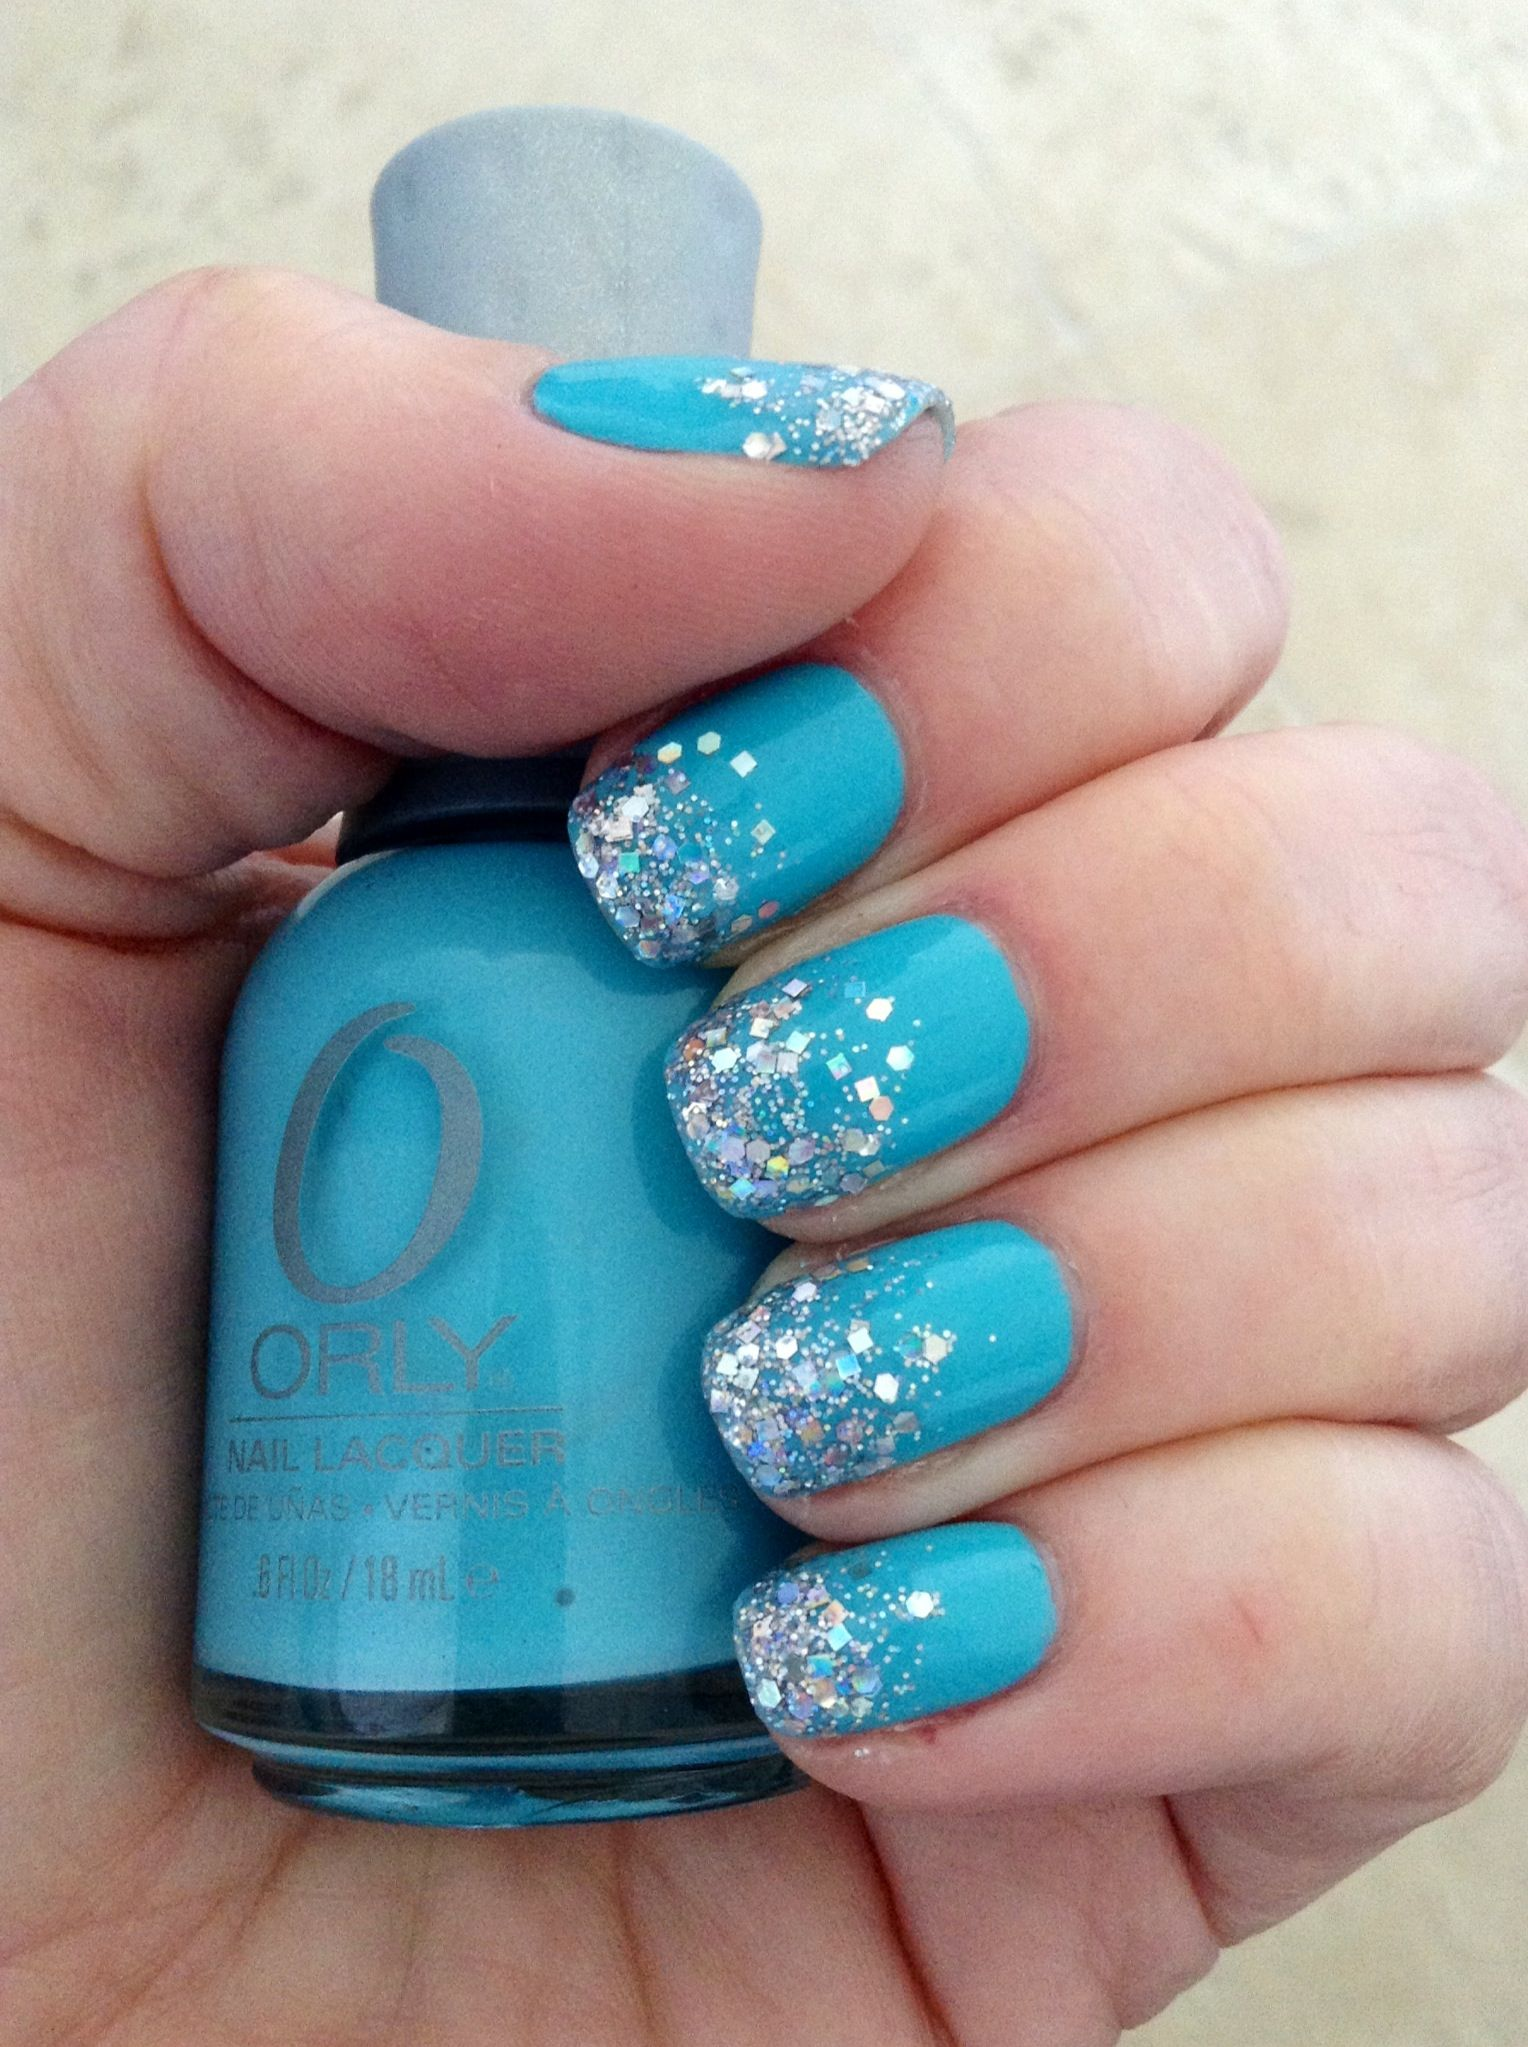 Nails Turquoise With Irridescent Silver Glitter Tips My Nail Polish Diary Nail Designs